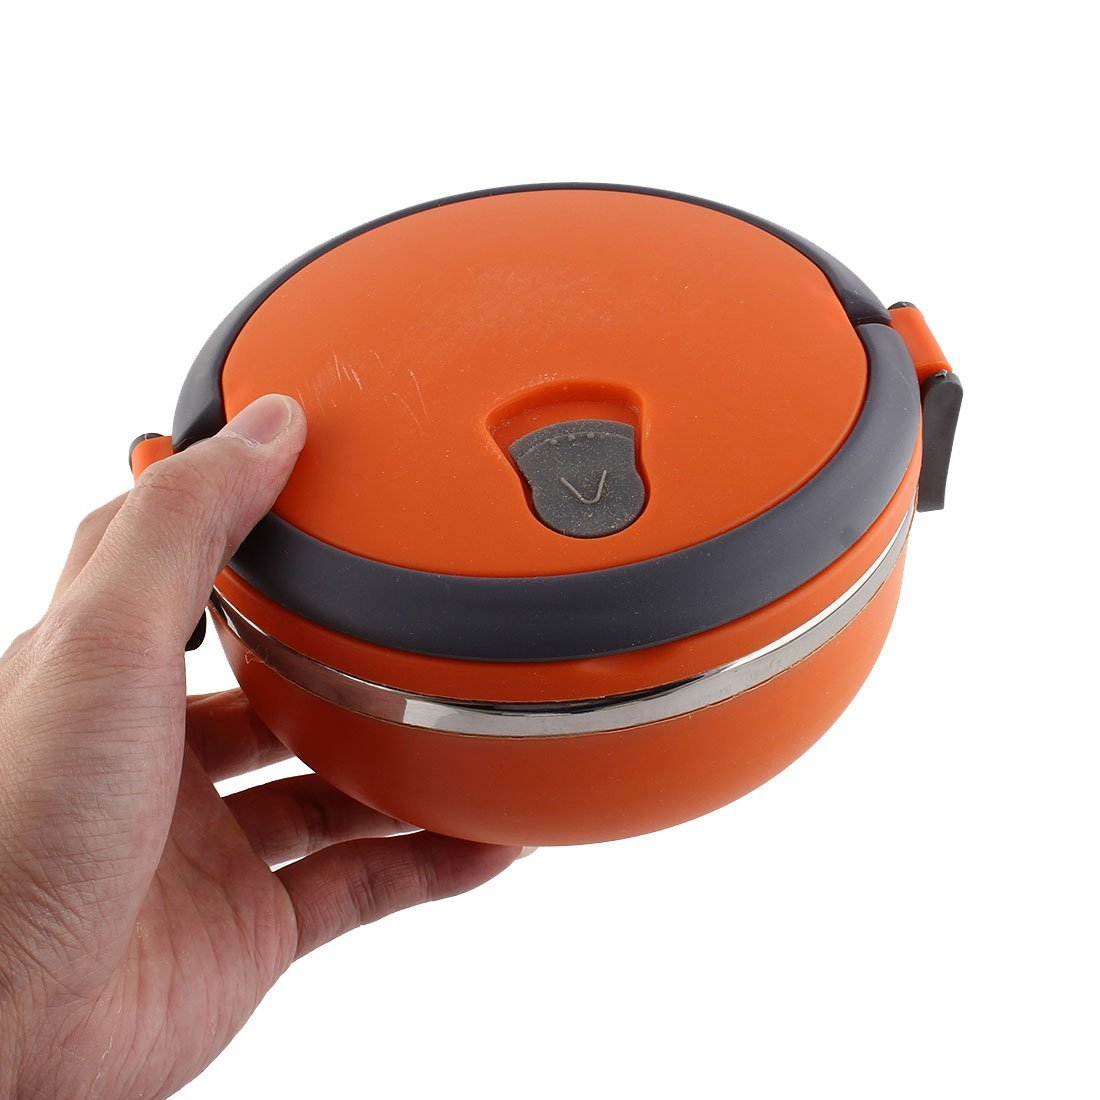 DealMux Home School Picnic Round Shaped Meal Container Lunch Box Holder Orange